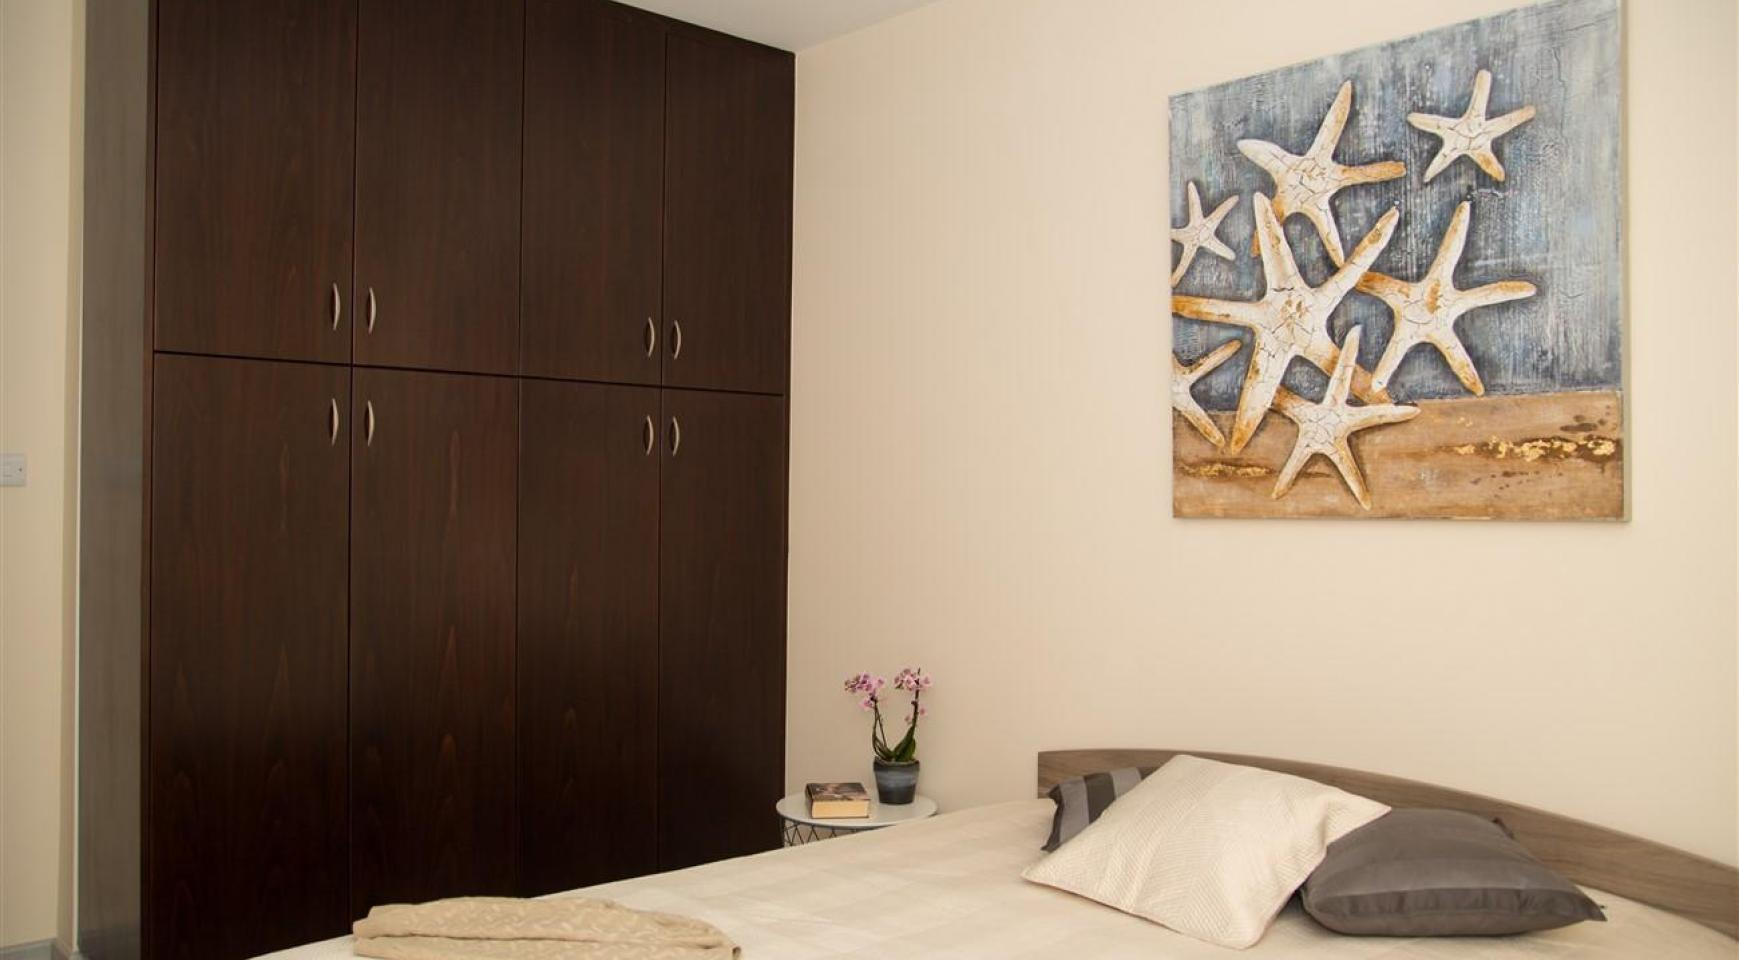 Luxury 2 Bedroom Apartment Frida 201 in the Tourist Area - 11